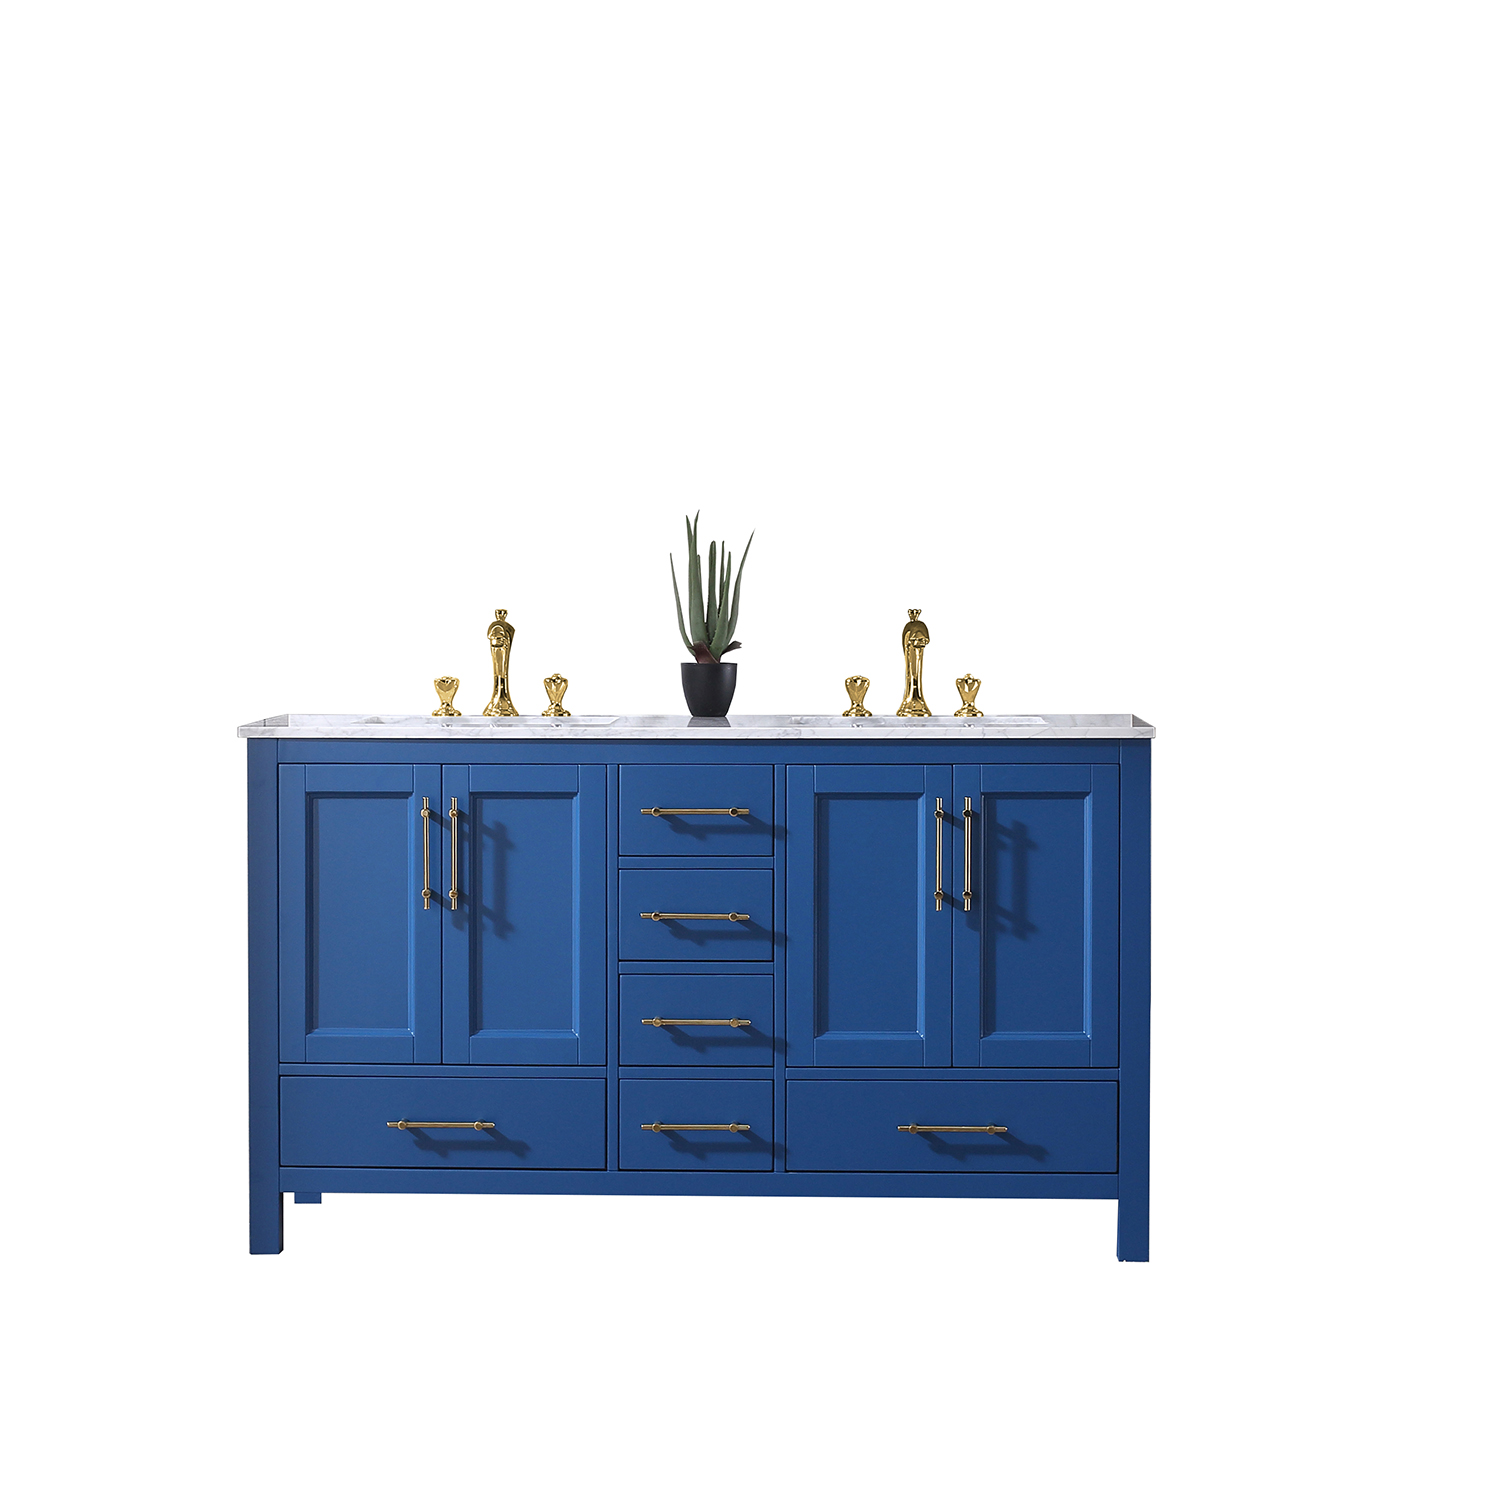 EVVN413 60BLU A Main - Eviva Navy 60 inch Deep Blue Bathroom Vanity with White Carrera Counter-top and Double White Undermount Porcelain Sinks